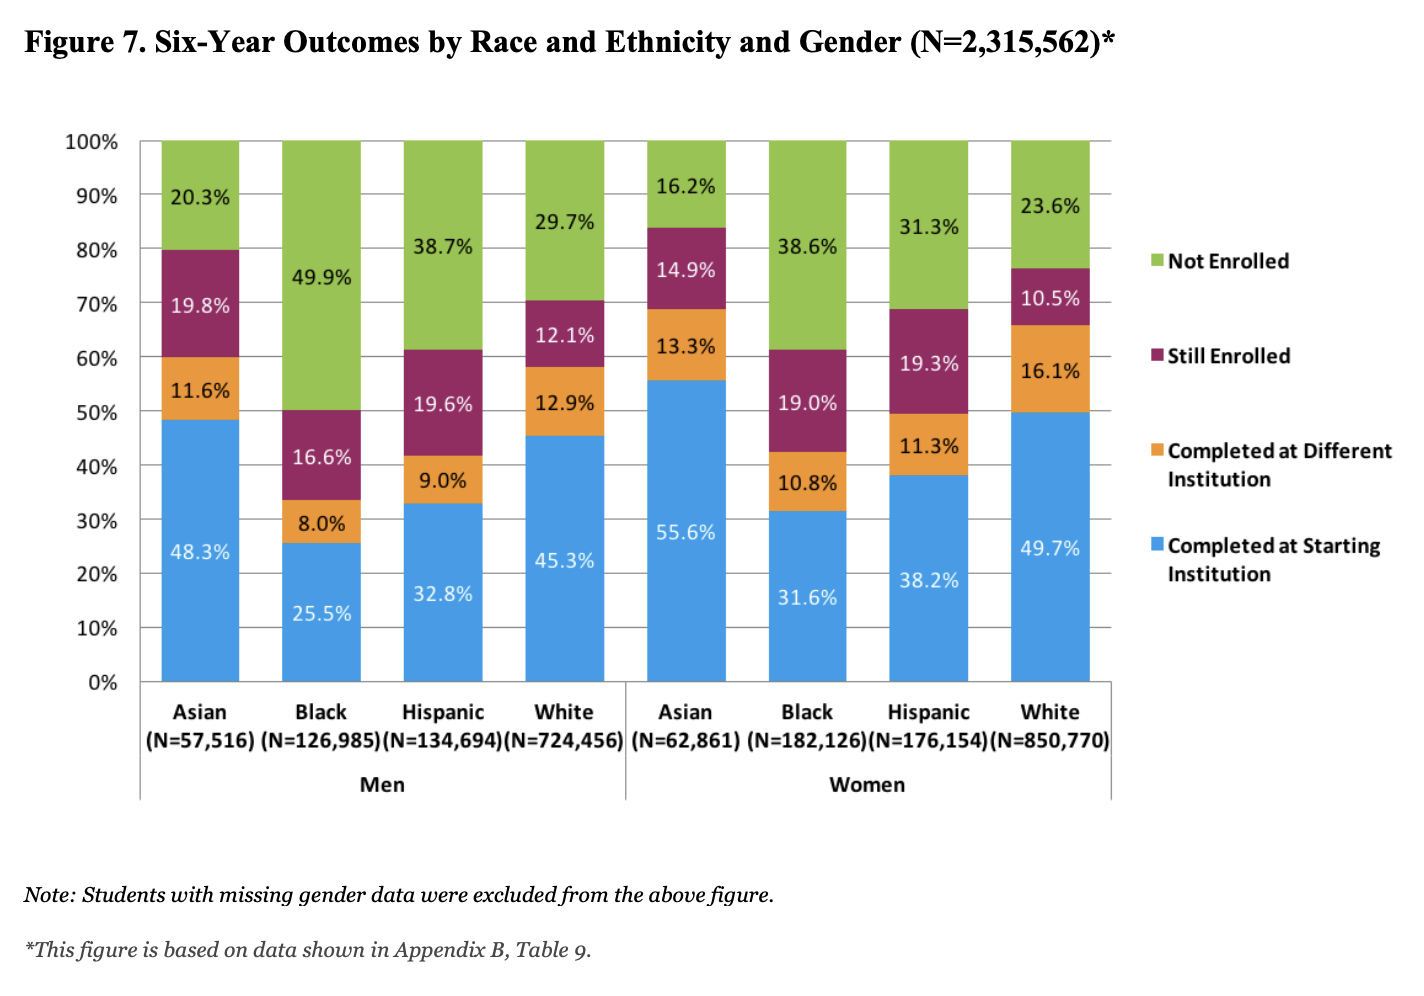 Six-Year College Education Outcomes by Race Gender and Ethnicity